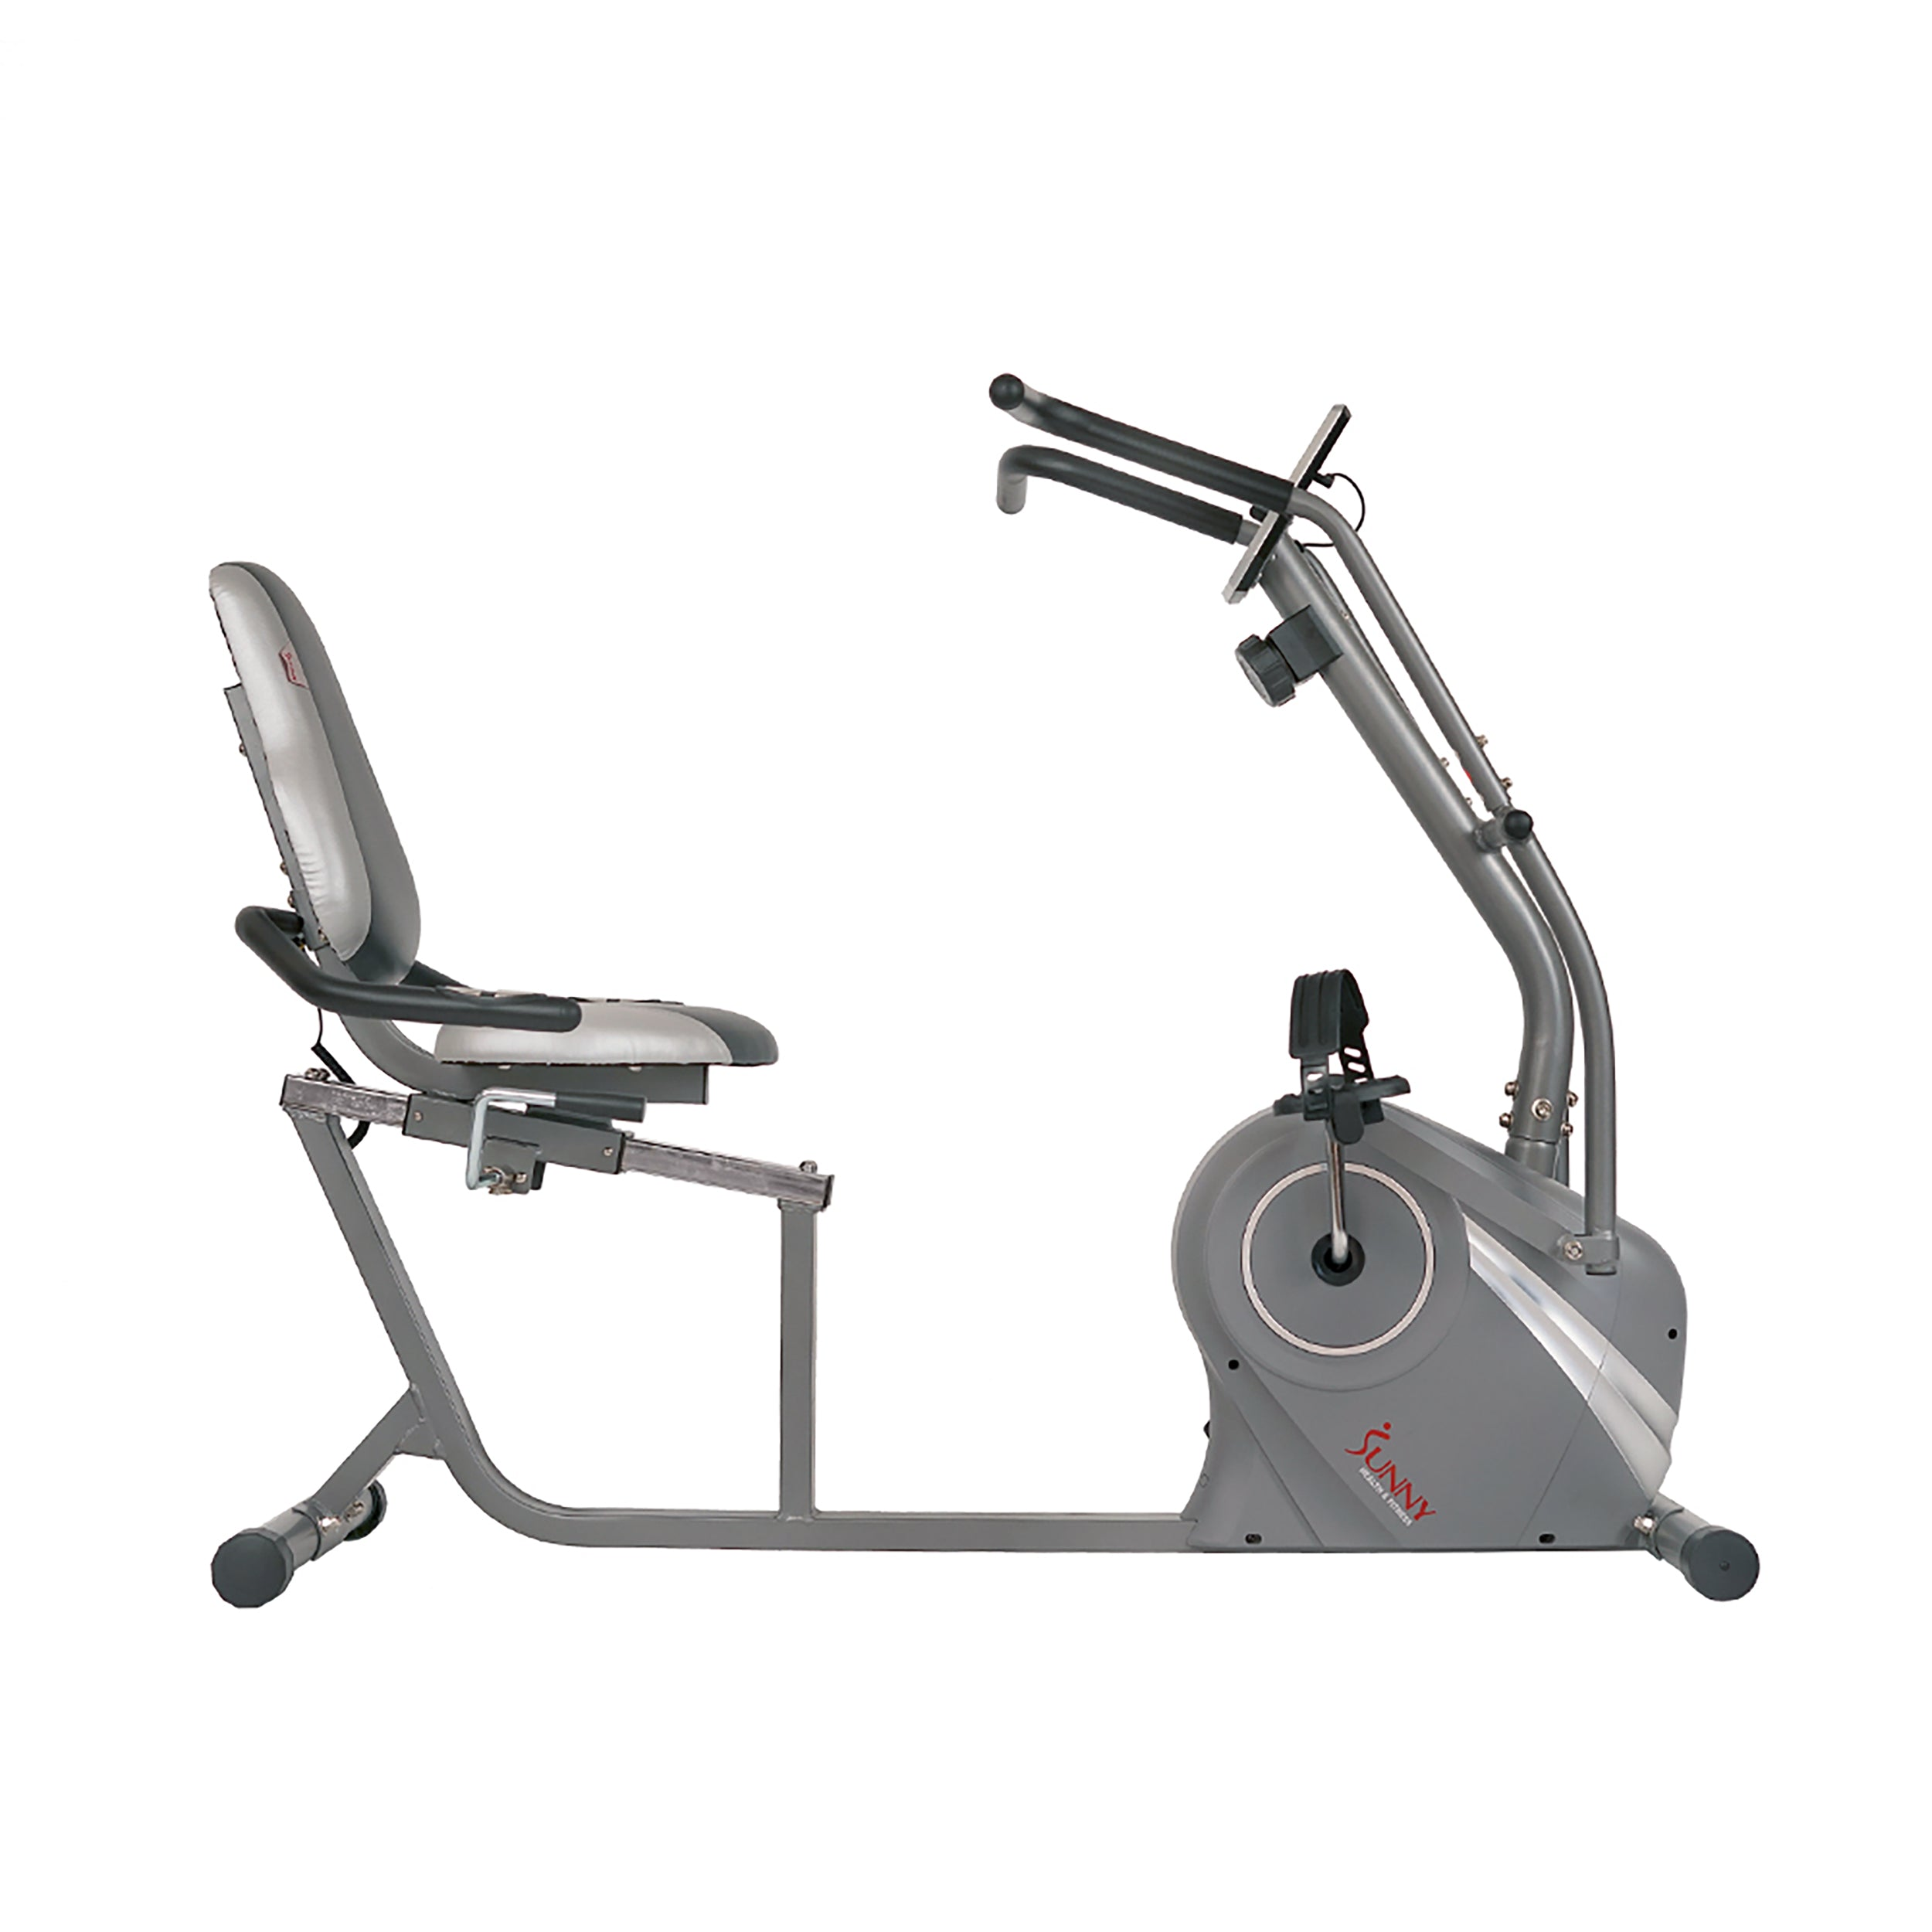 sunny-health-fitness-bikes-cross-trainer-magnetic-recumbent-bike-arm-exercisers-SF-RB4936-frame